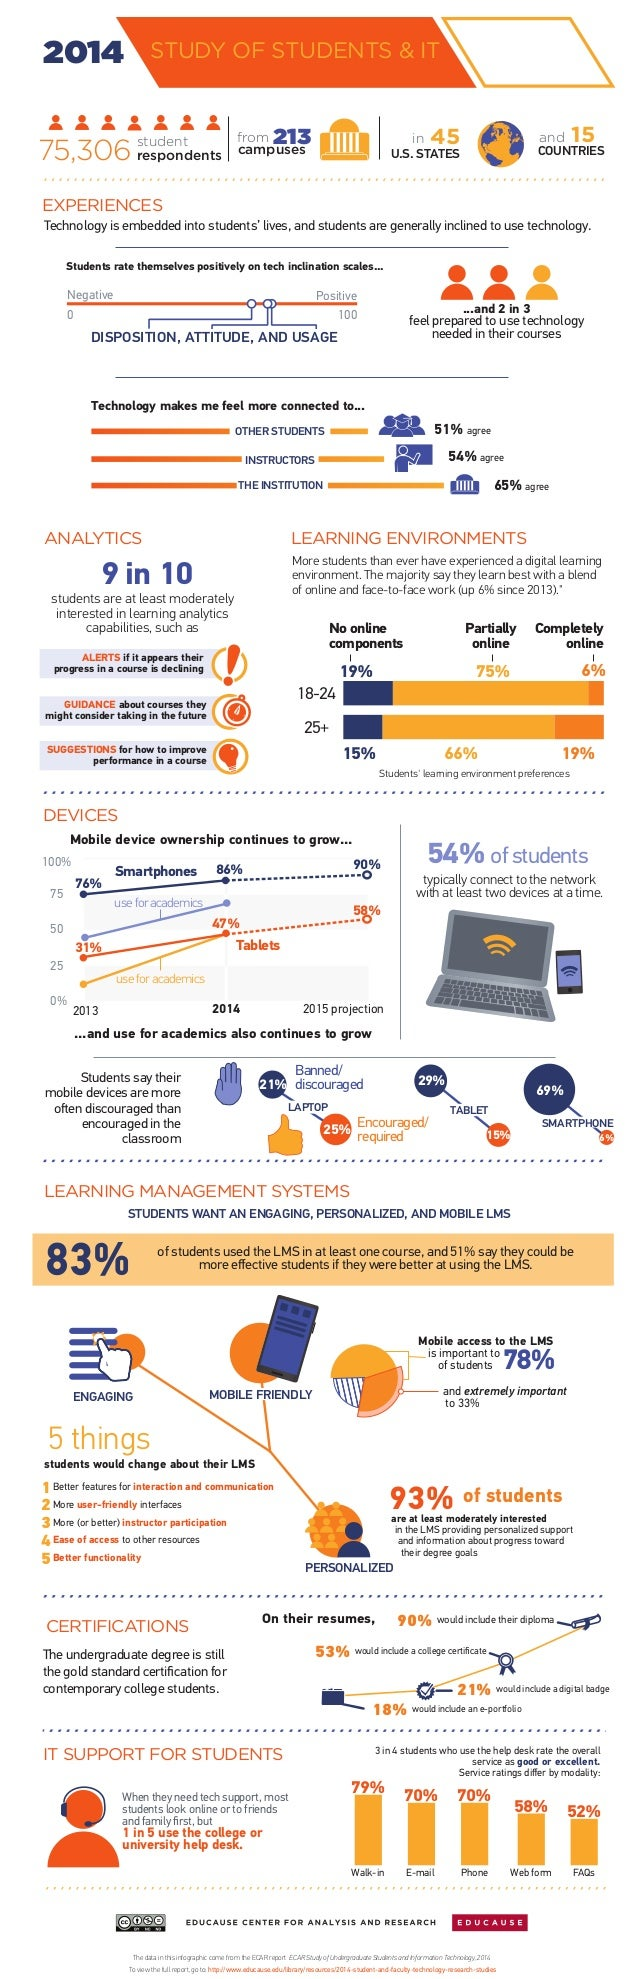 2014 STUDY OF STUDENTS & IT  student from in  45  respondents  and 15  EXPERIENCES  Technology is embedded into students' ...